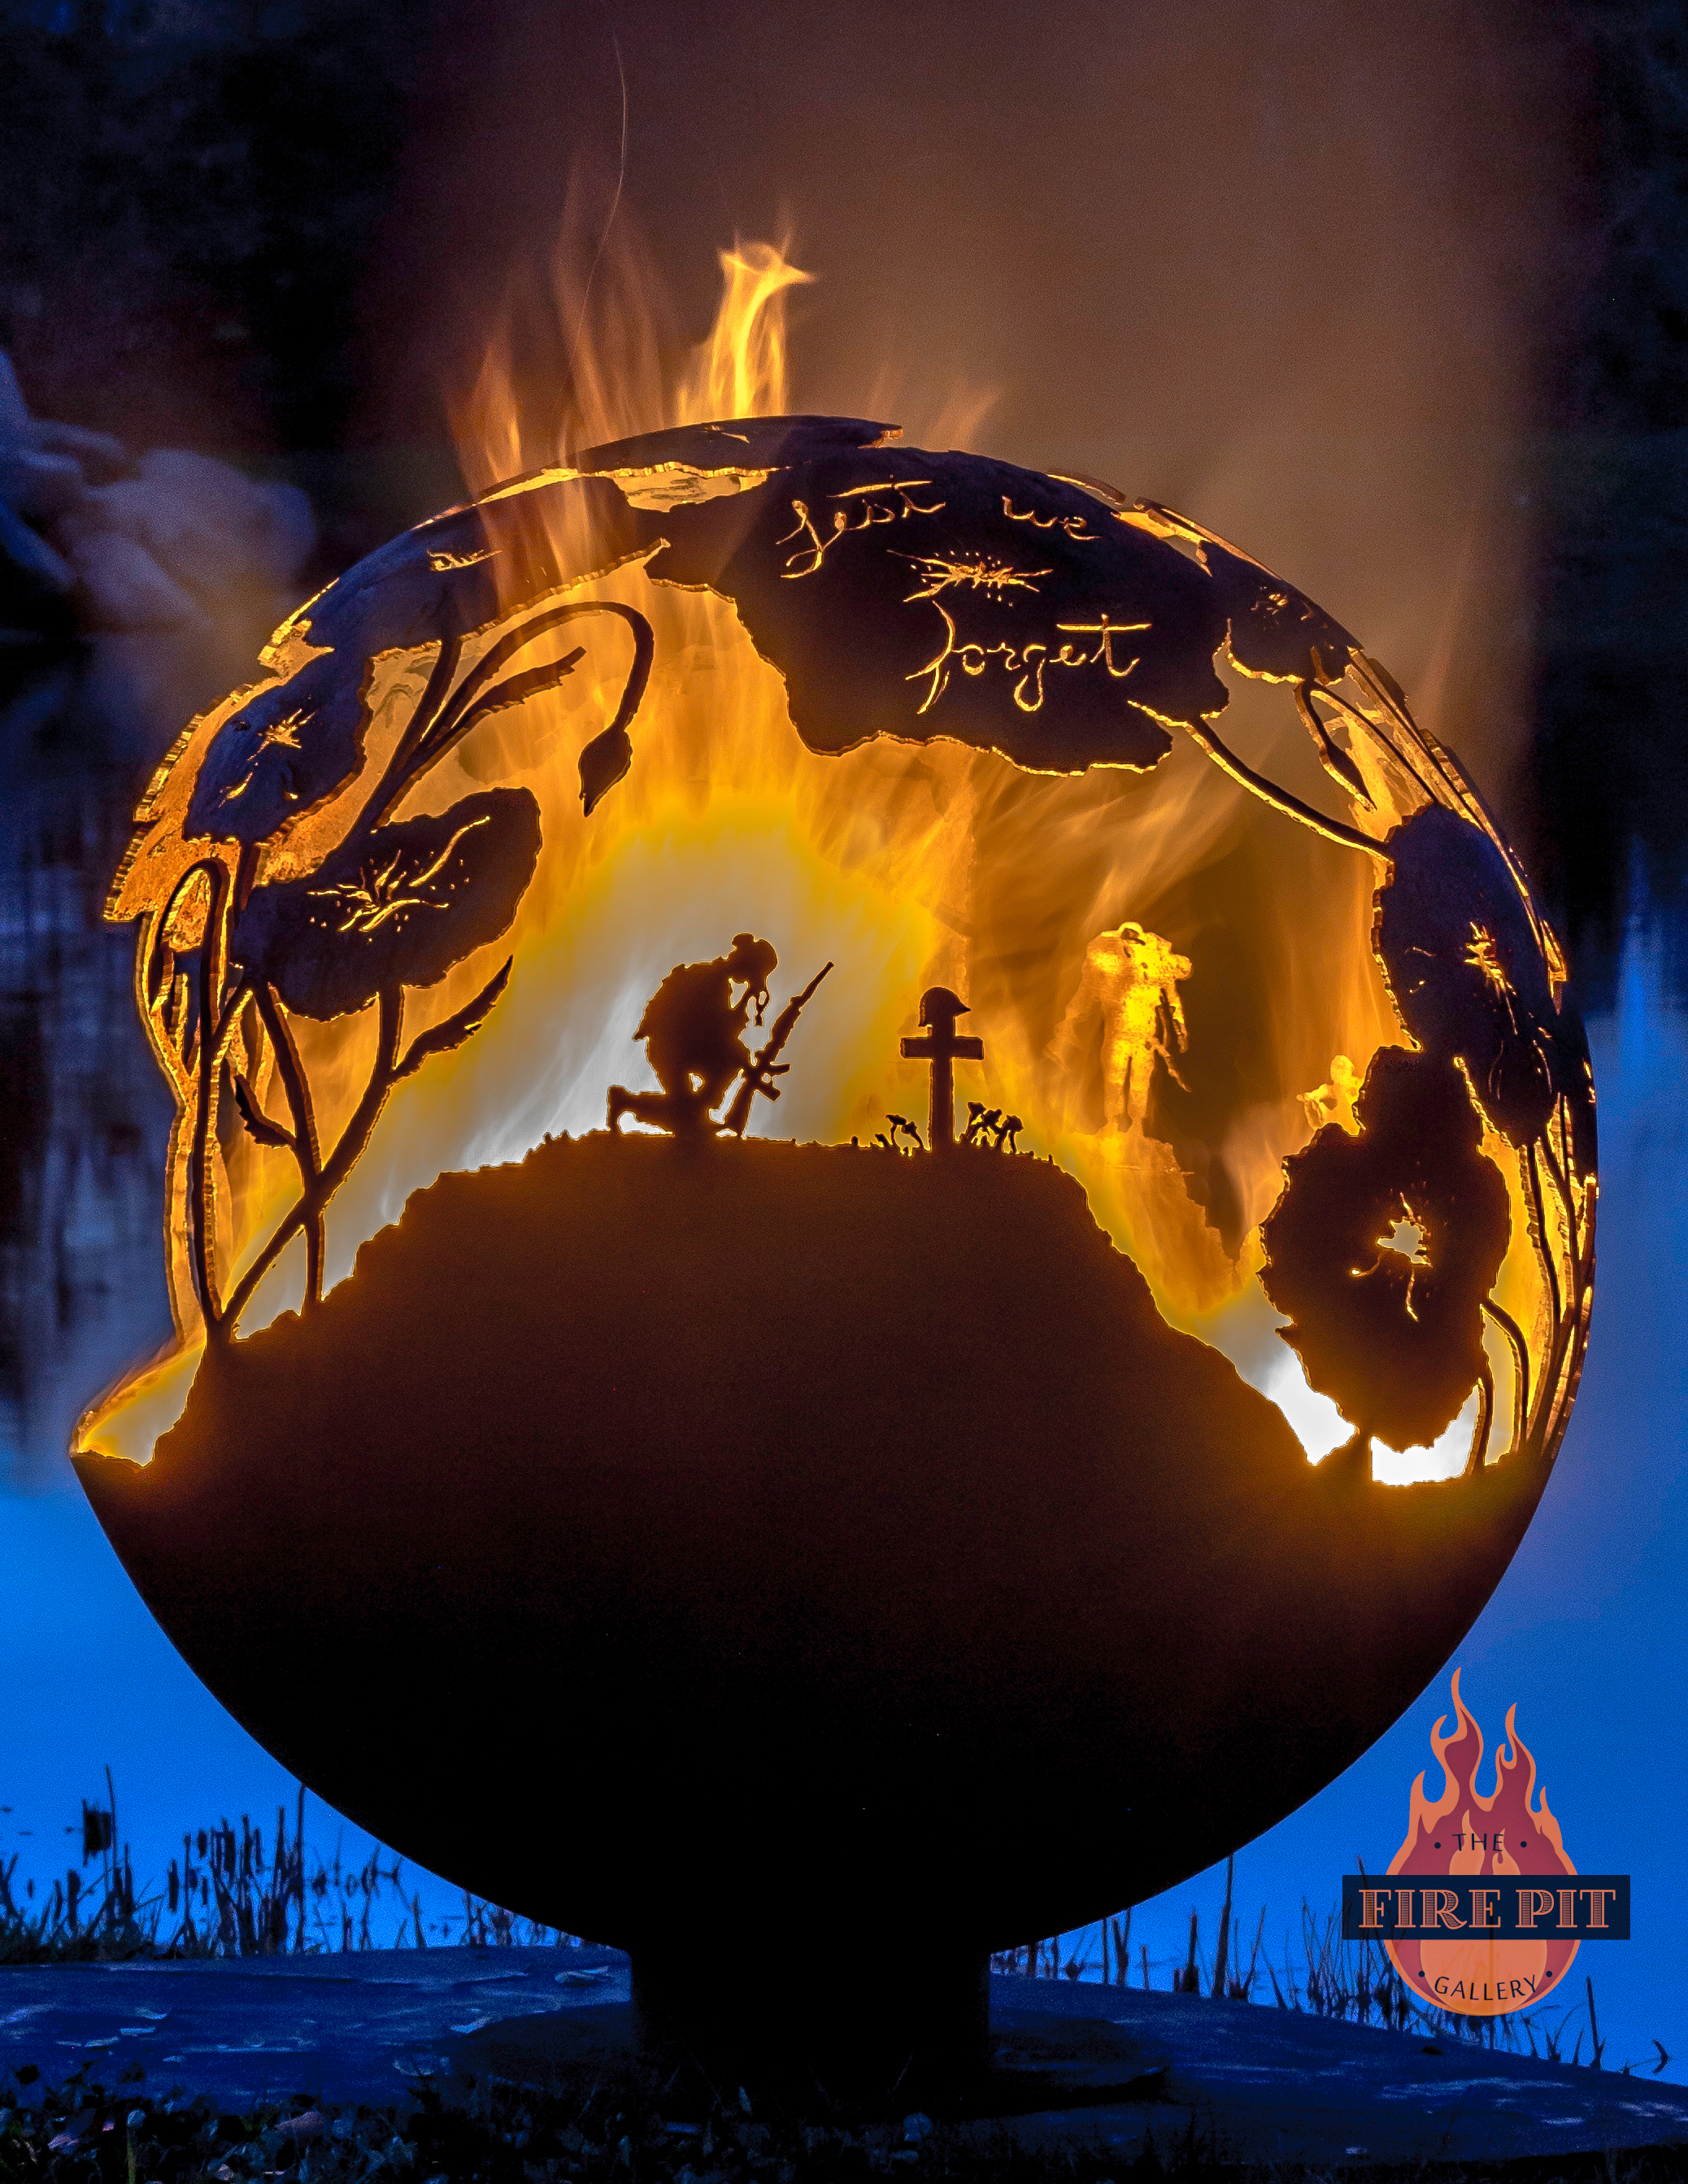 Attractive Lest We Forget Fire Pit Sphere 01   The Fire Pit Gallery